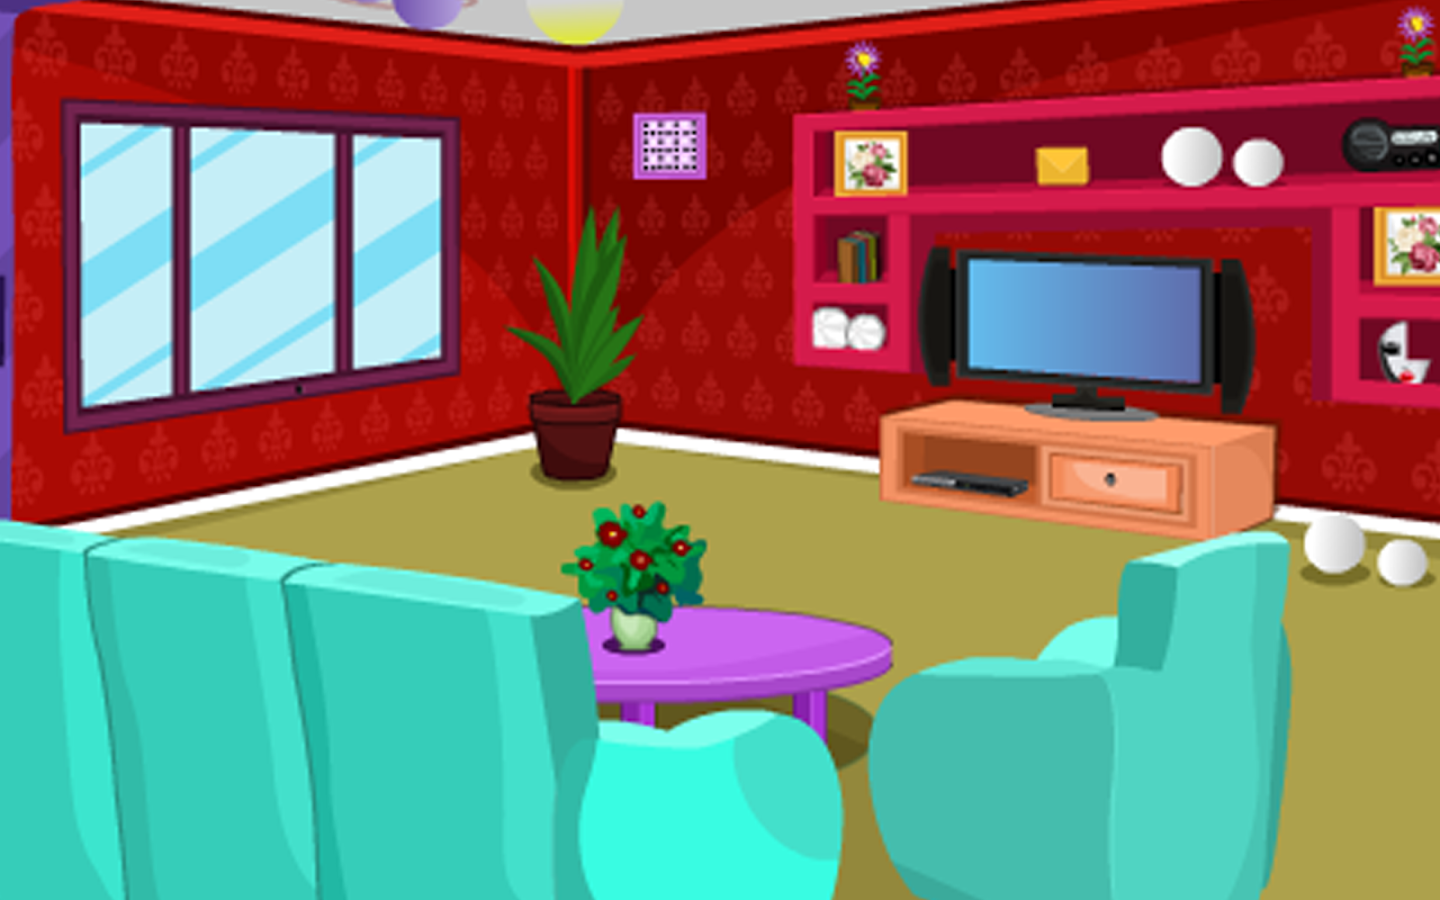 Escape games puzzle rooms 6 android apps on google play for Living room 94 game